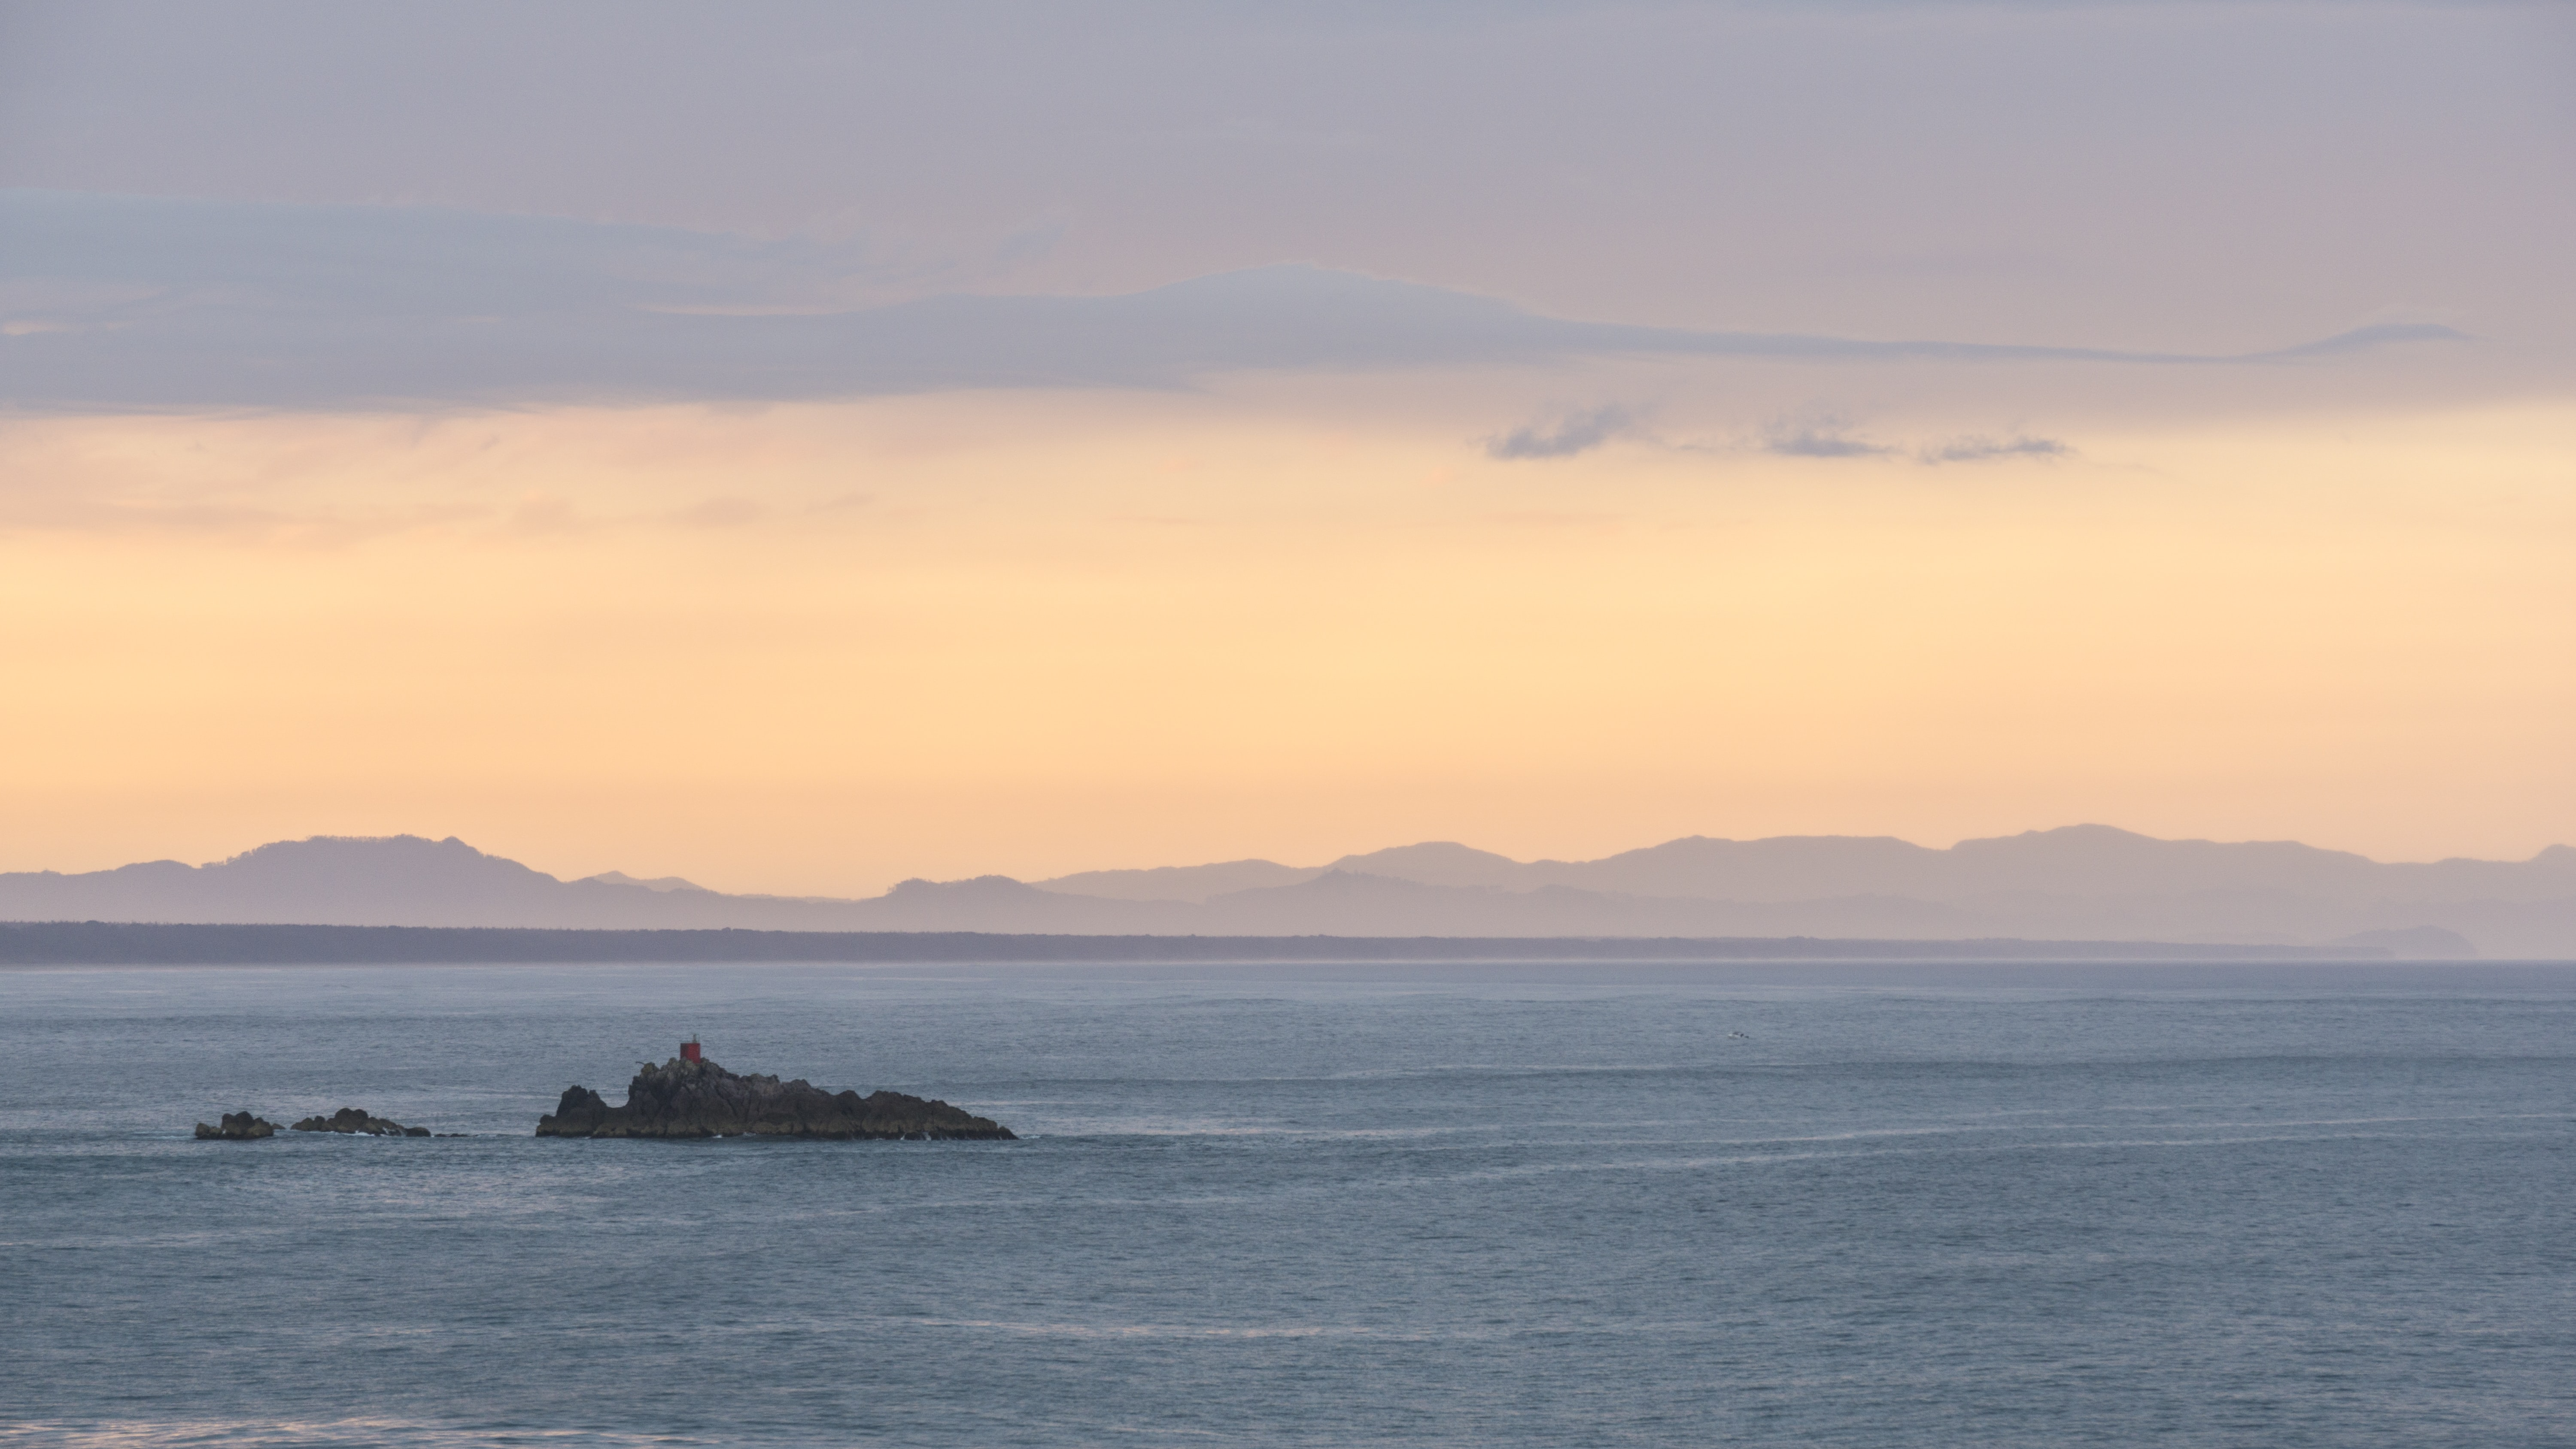 islet on sea during daytime